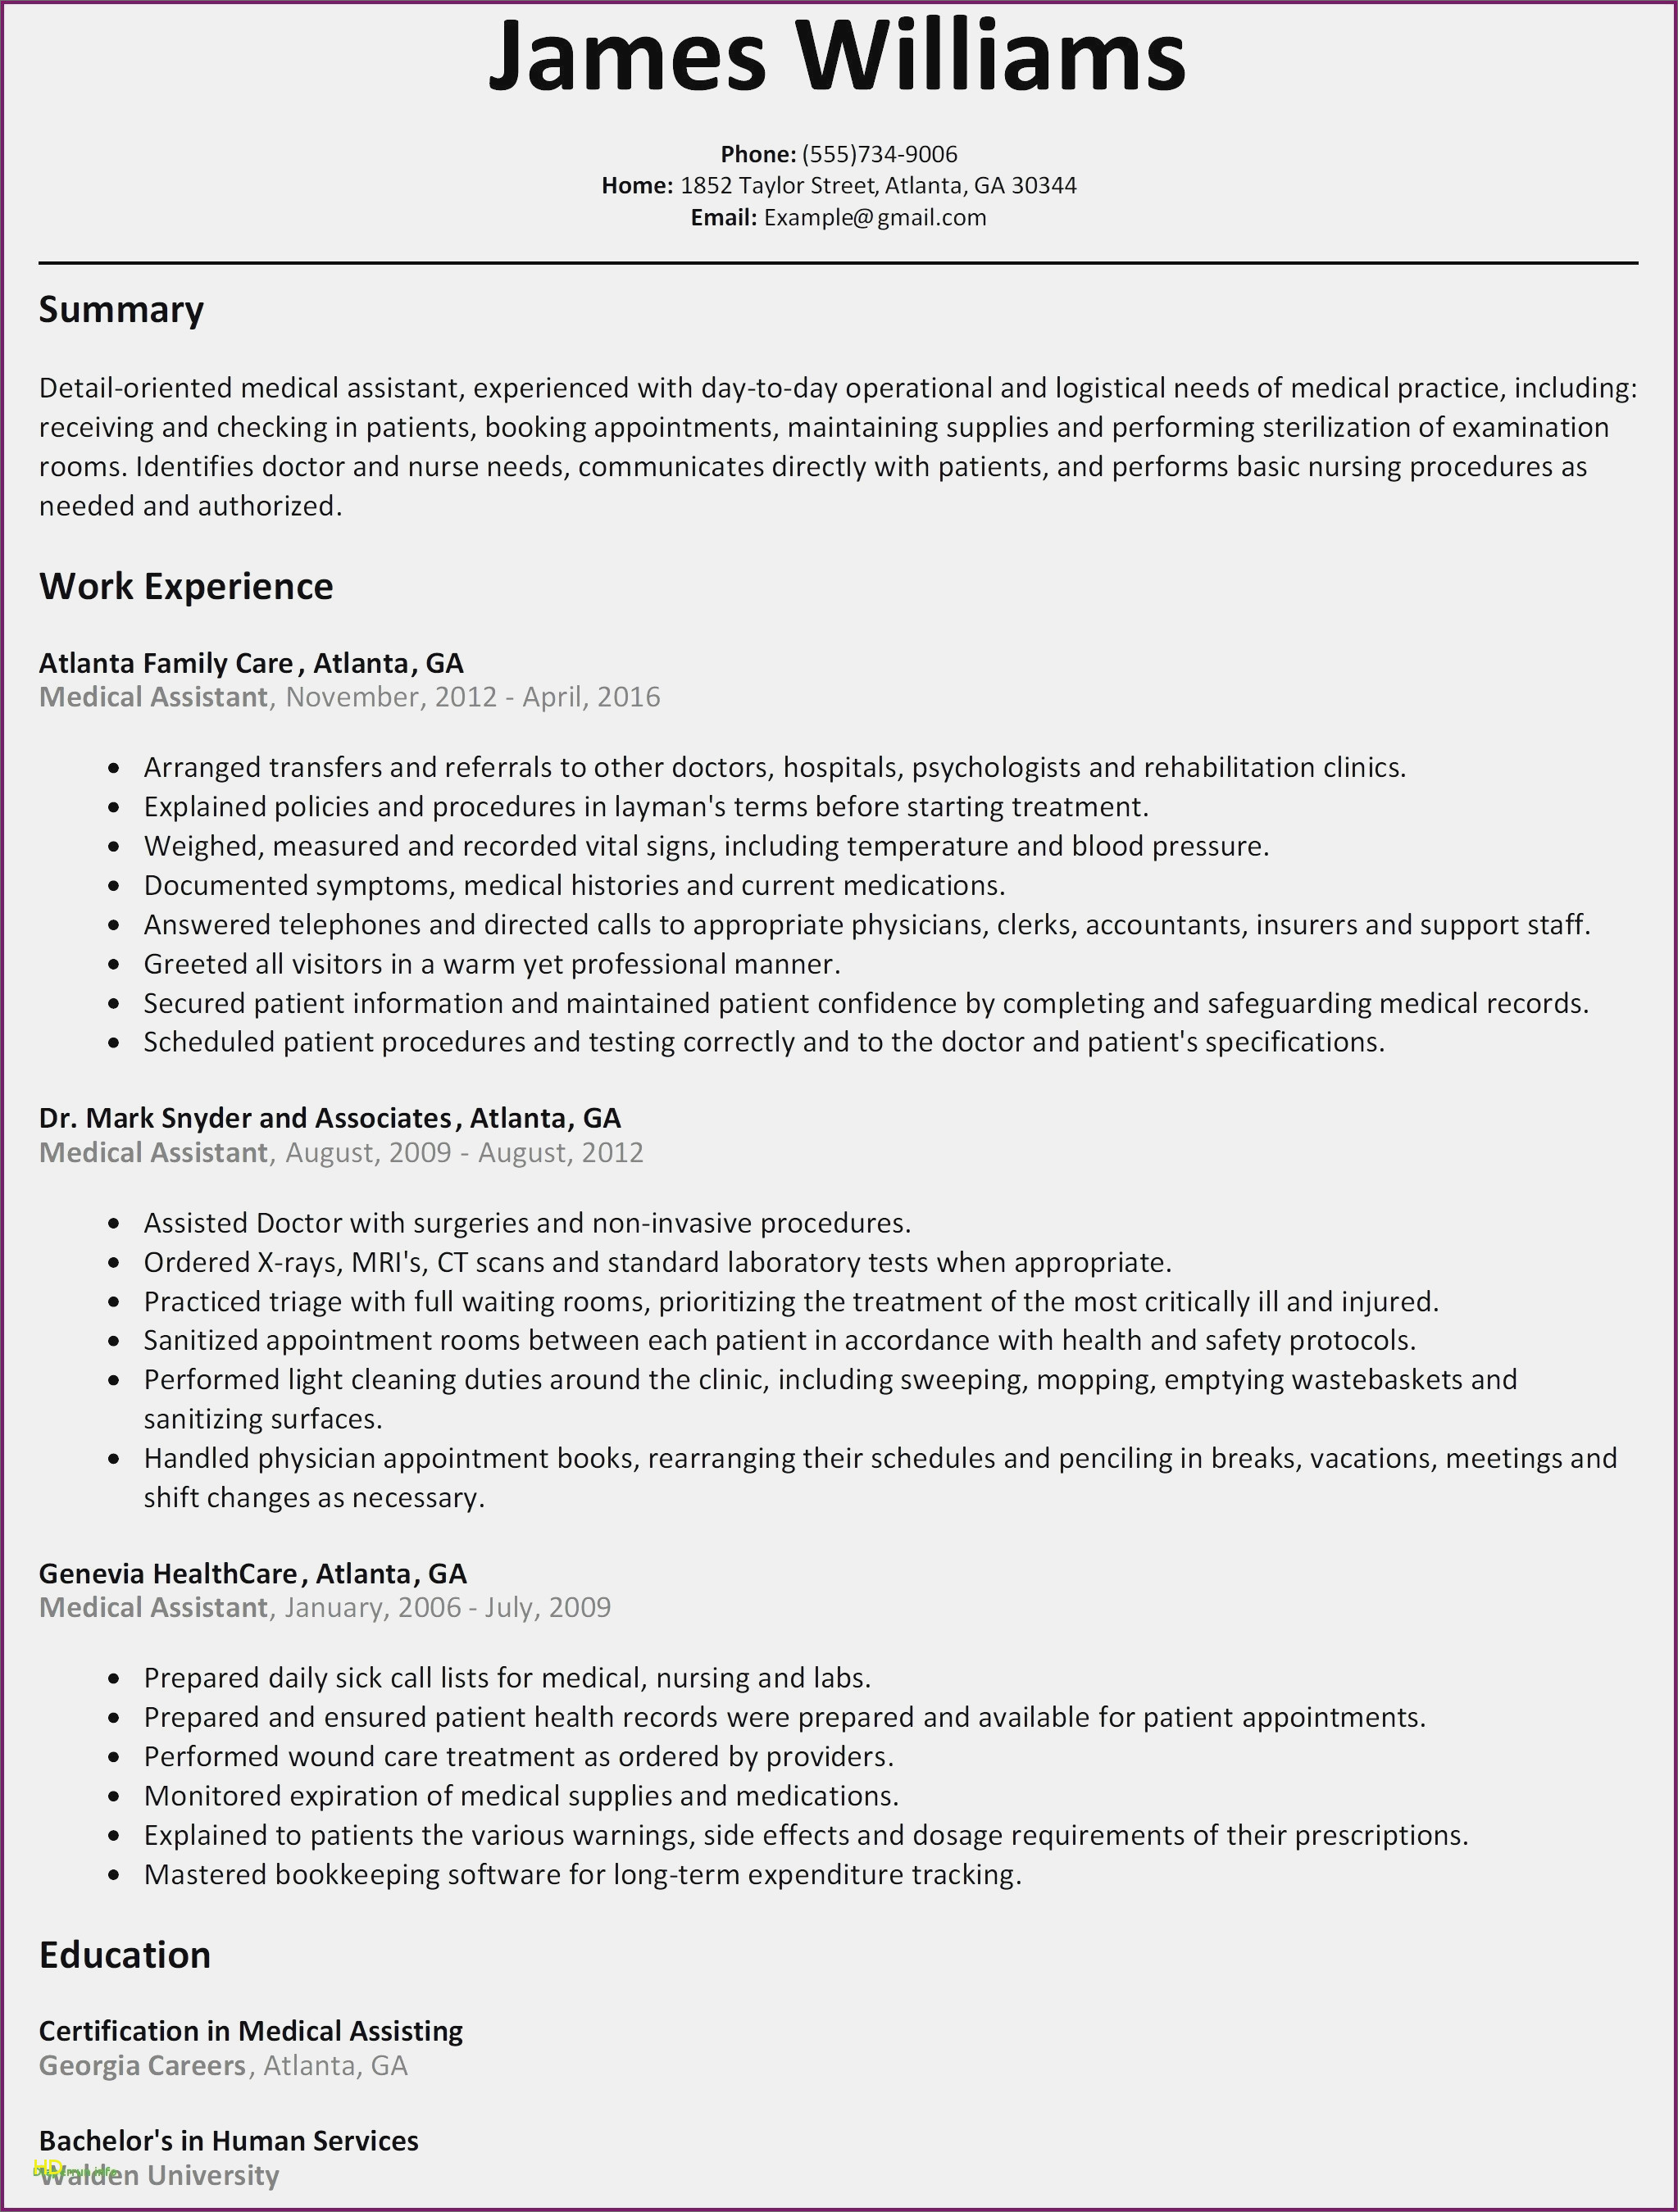 Acting Resume Template for Microsoft Word - Invoice Beautiful Voice Over Invoice Template Florist Awesome